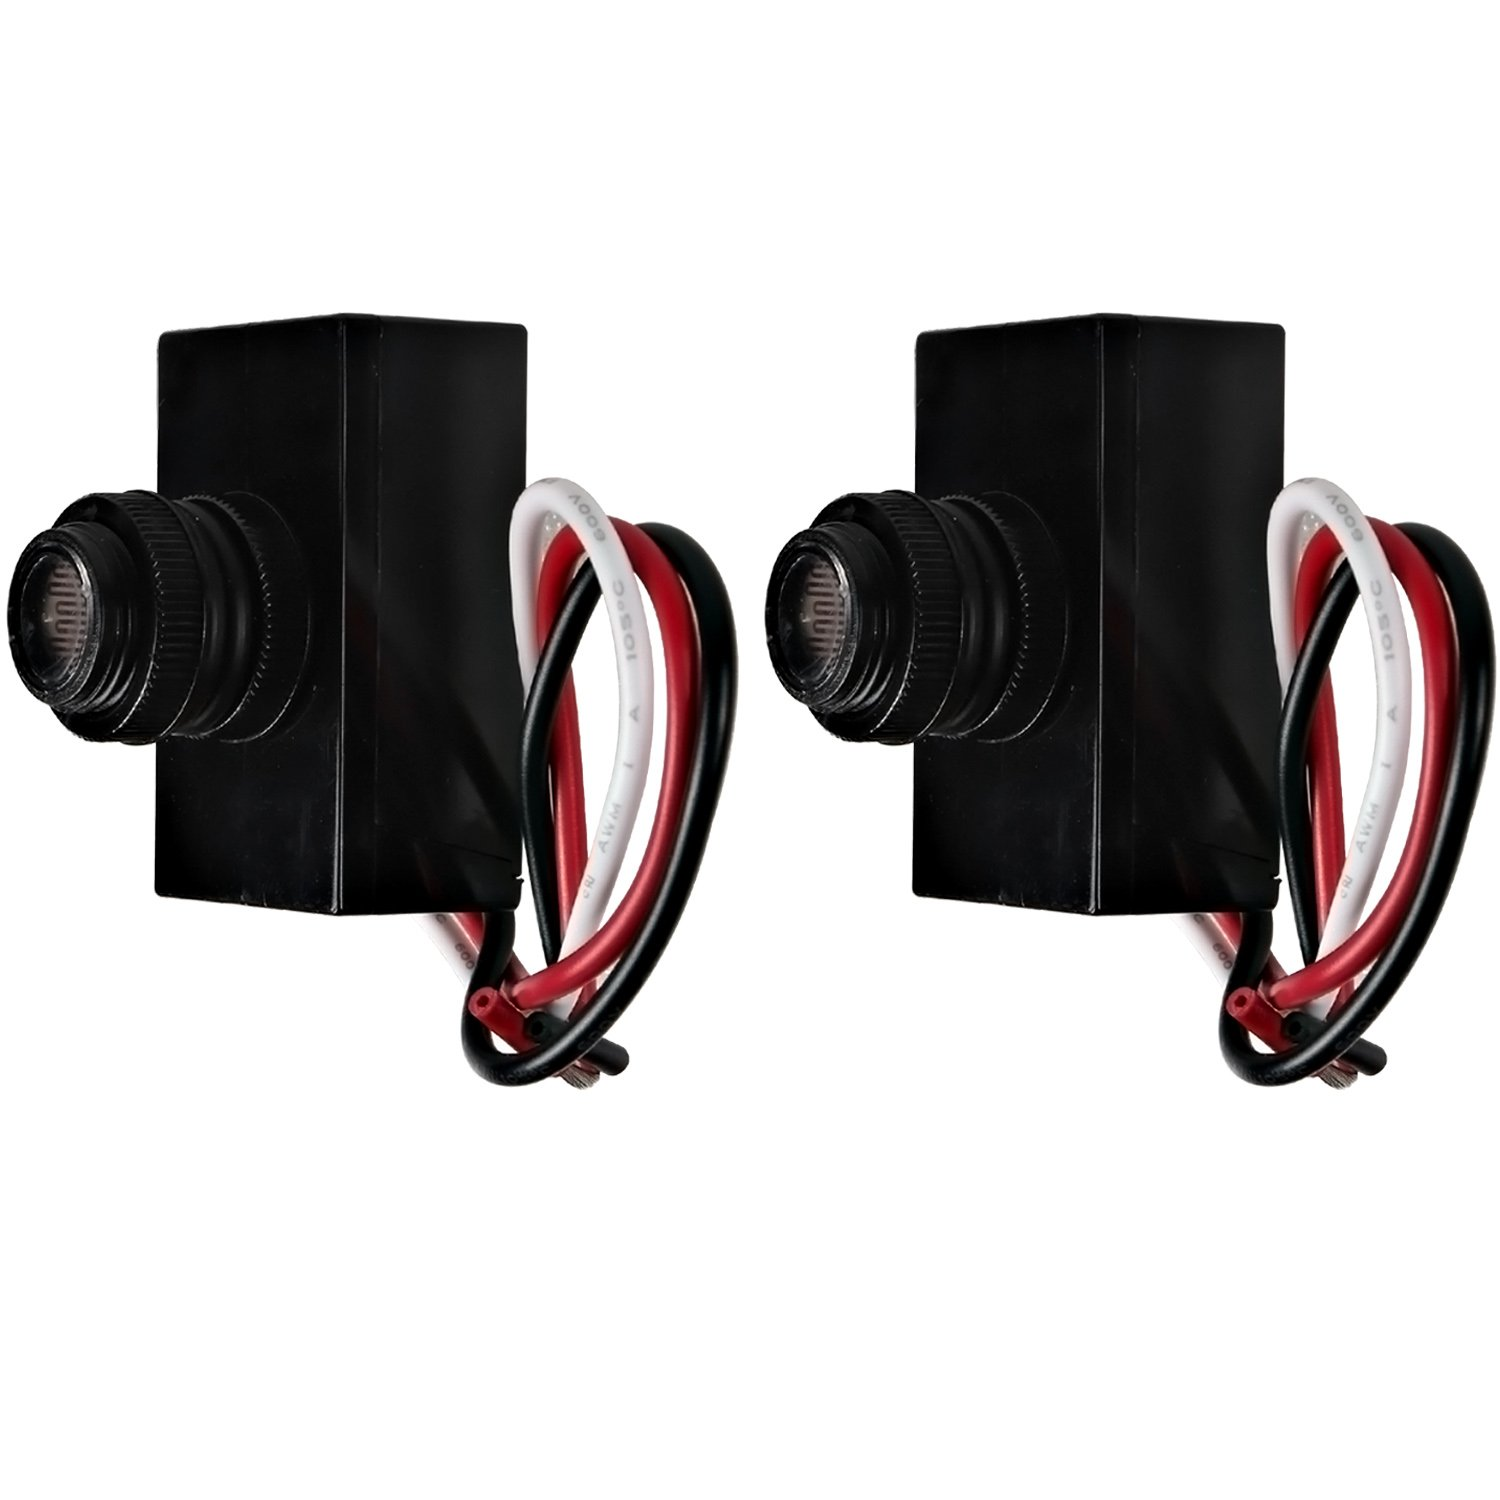 Best Photo Eyes For Lights Eye Sensor Wiring Hykolity Outdoor Post Light Controlthermal Type Control Dusk To Dawn Switch Pack Of 2